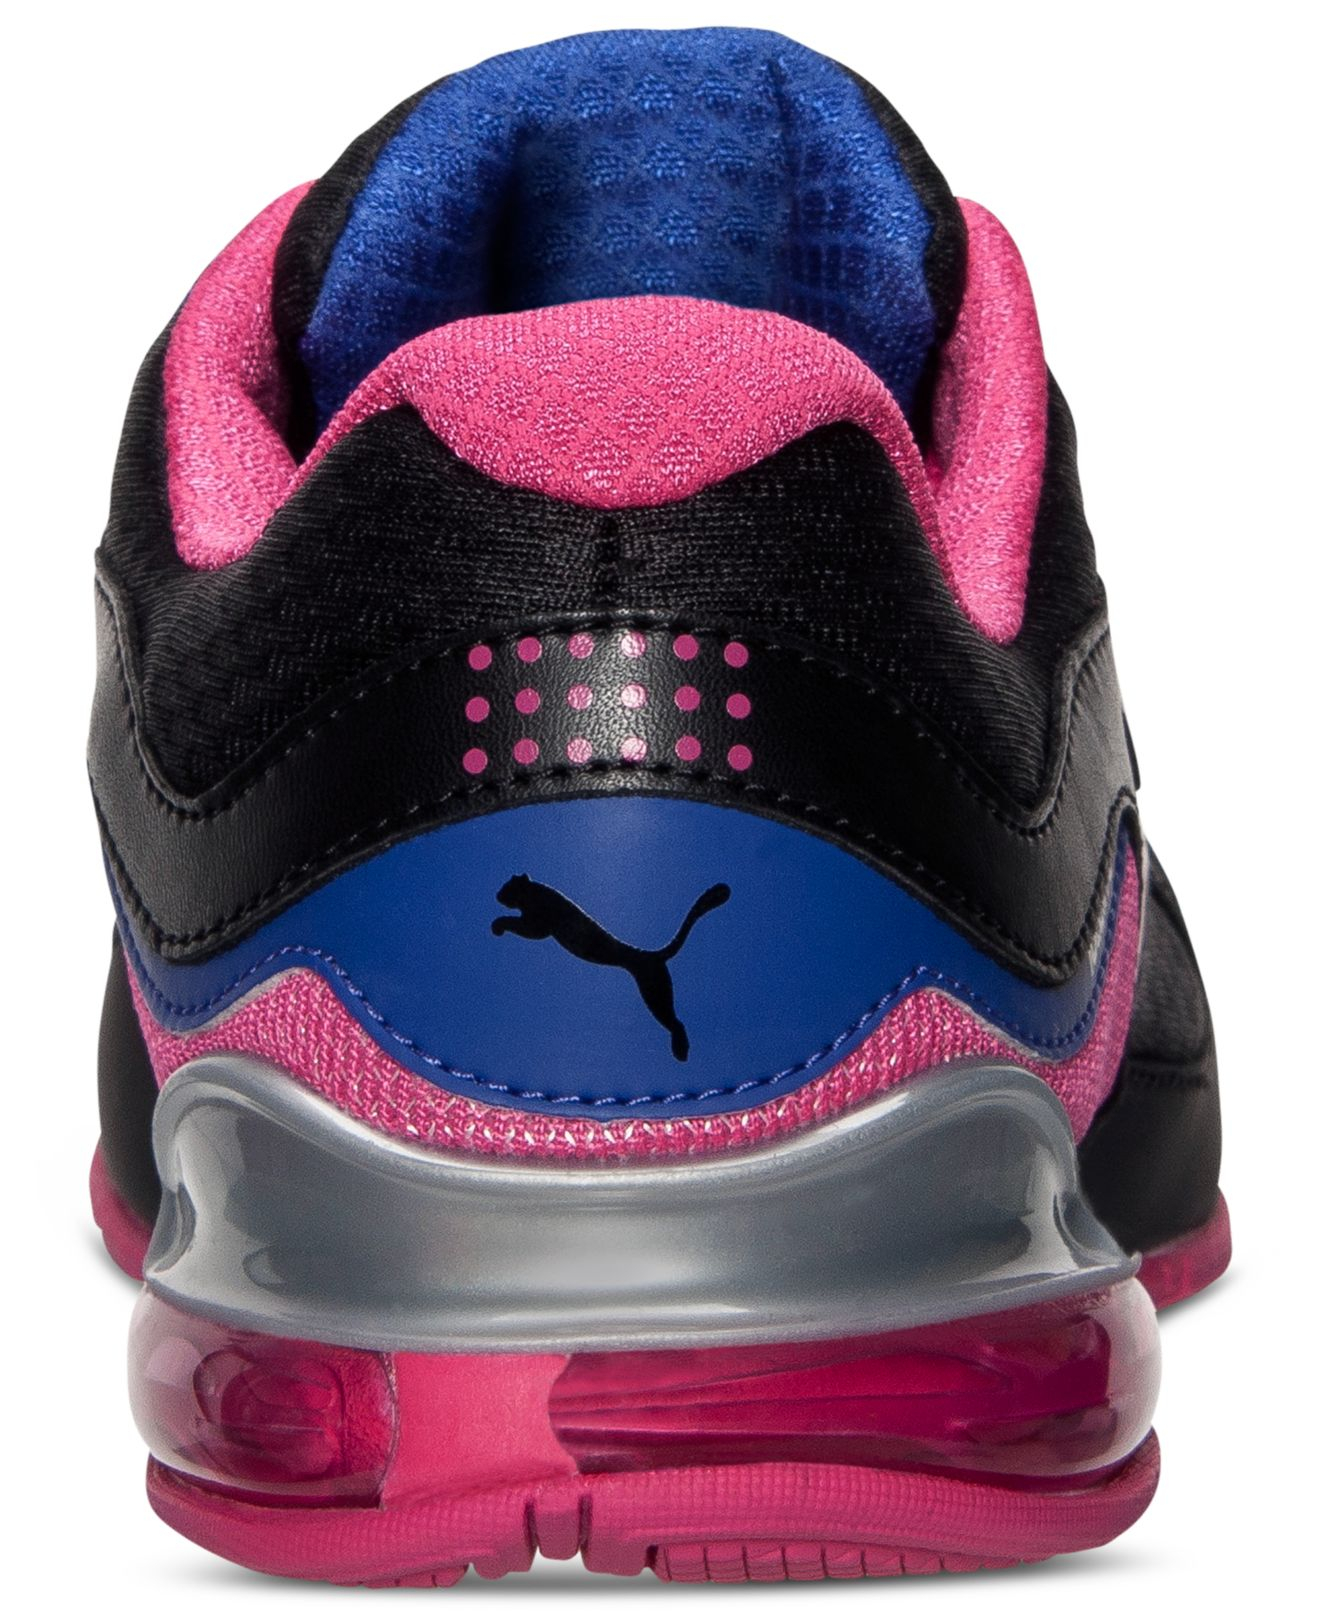 ... fashion styles Lyst - Puma Women S Cell Riaze Running Sneakers From Finish  Line in Pink ... 20eefca76